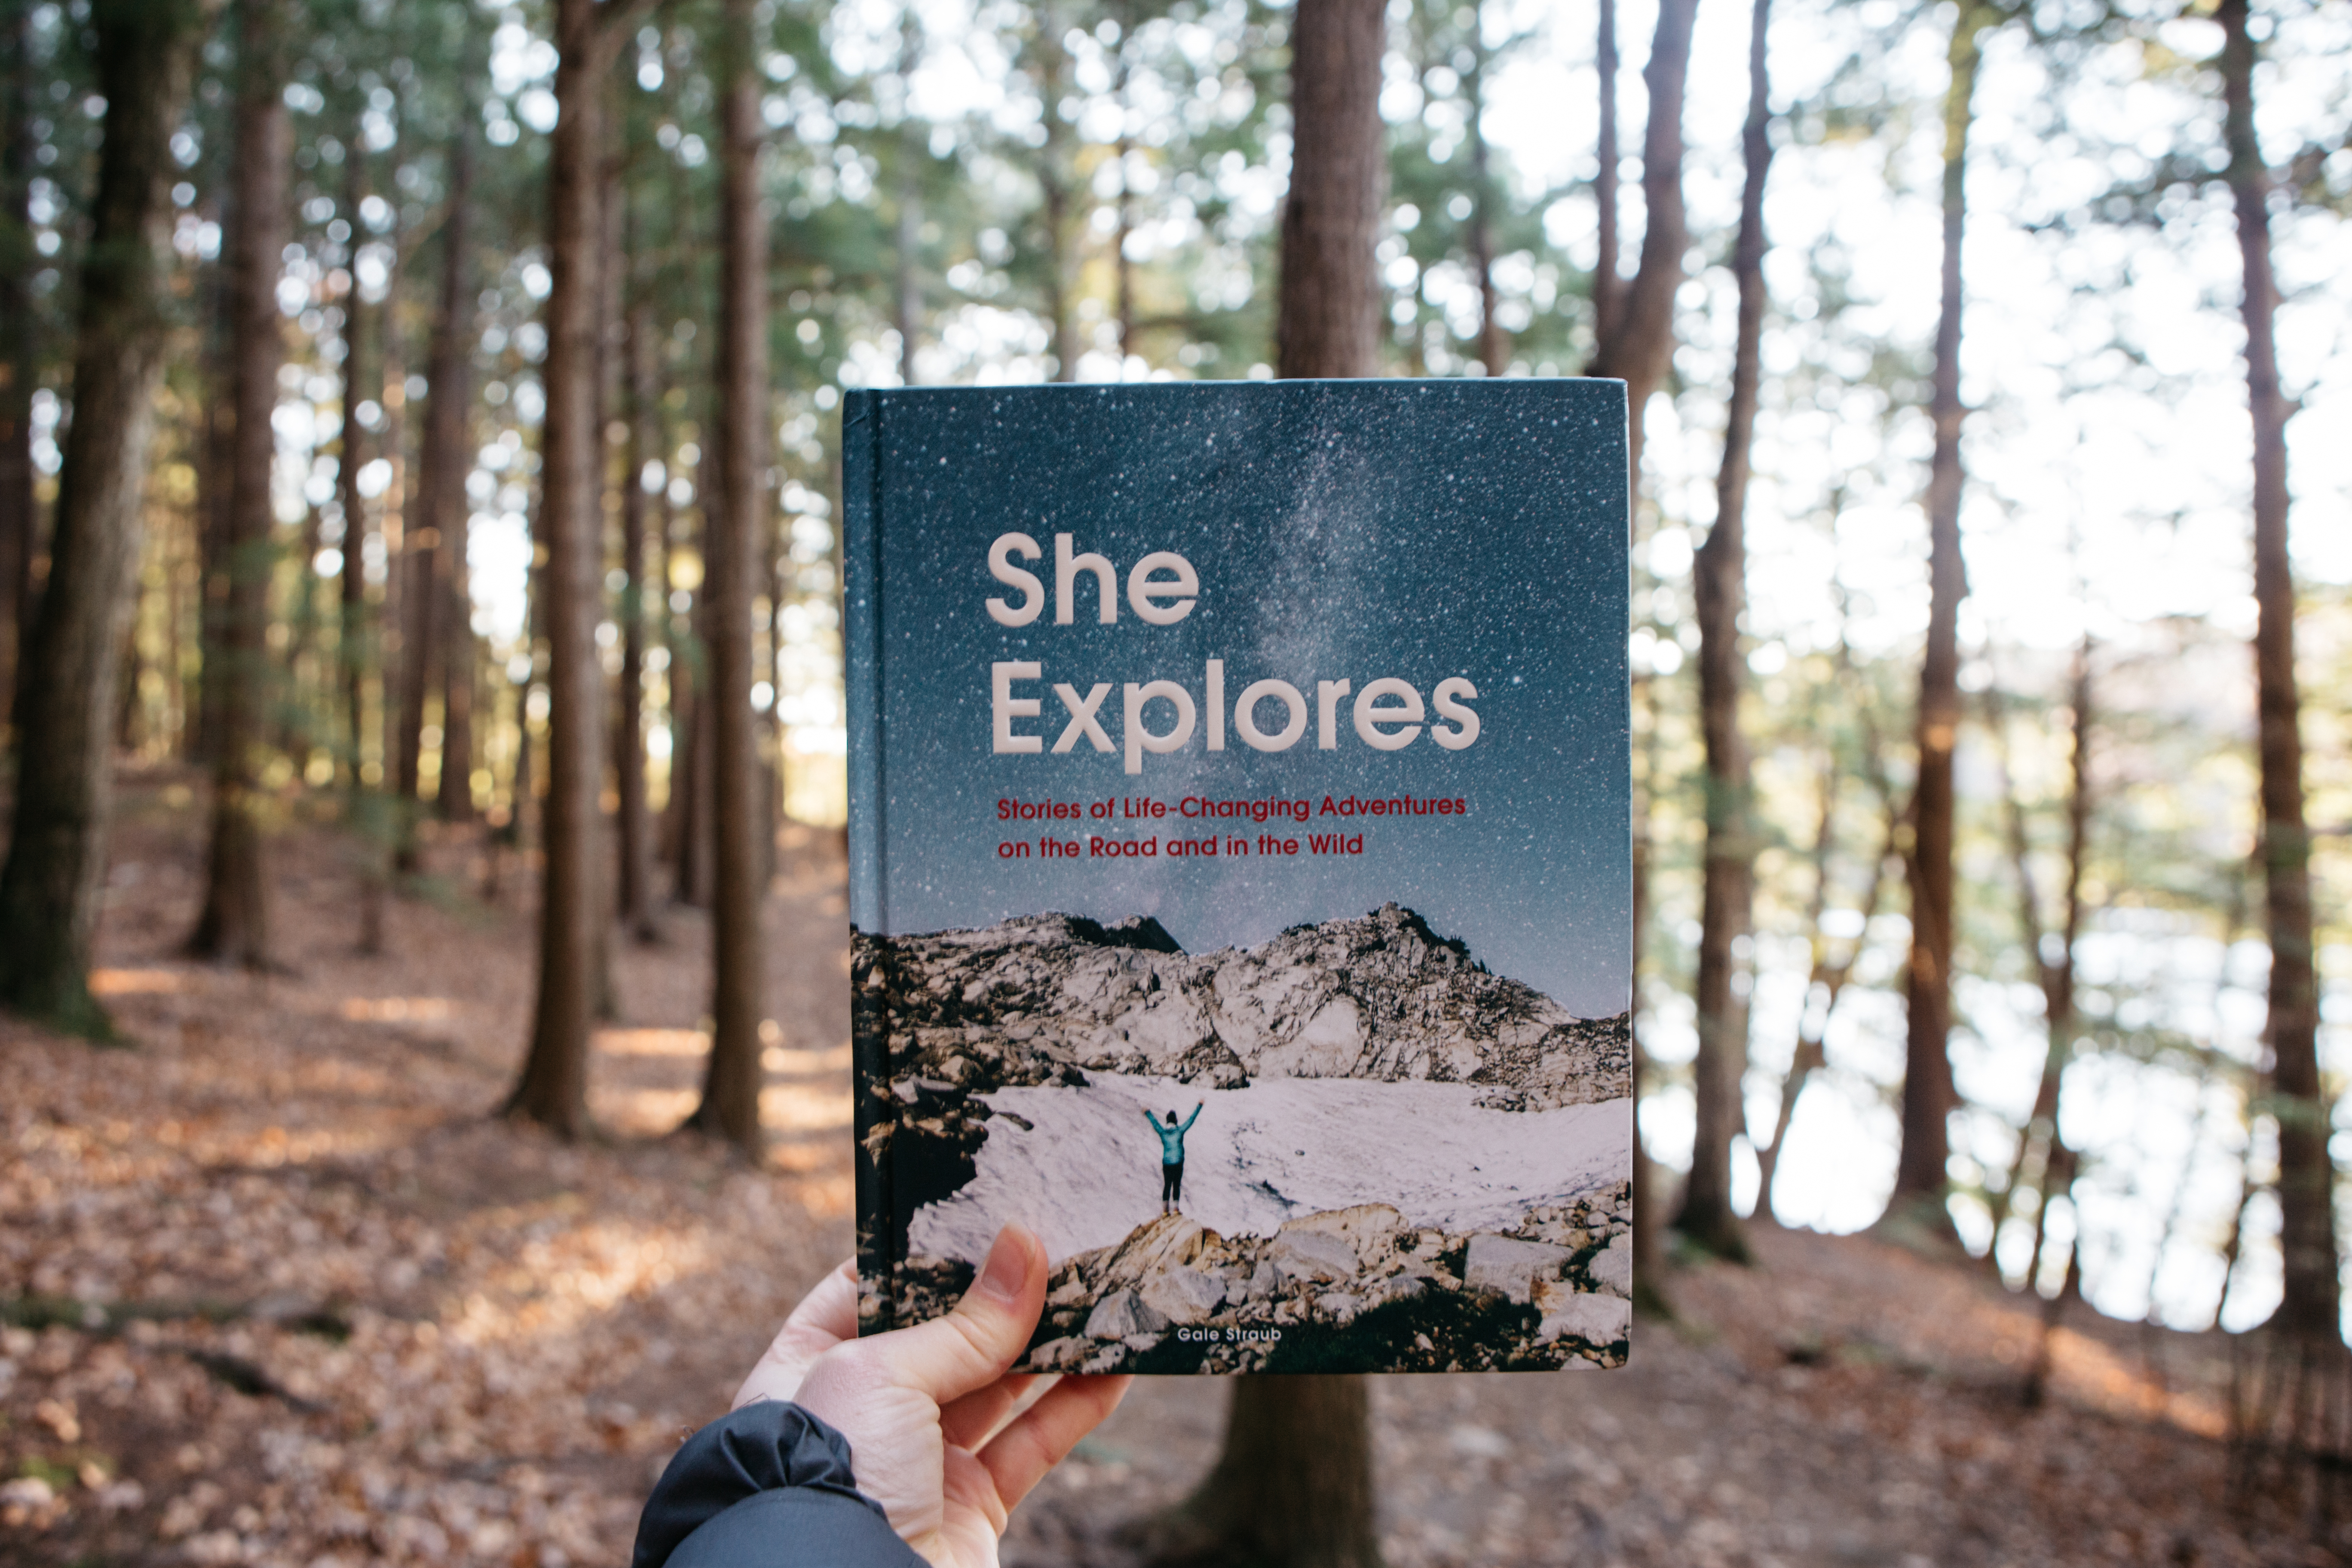 She Explores- Women on the road, stories and experiences